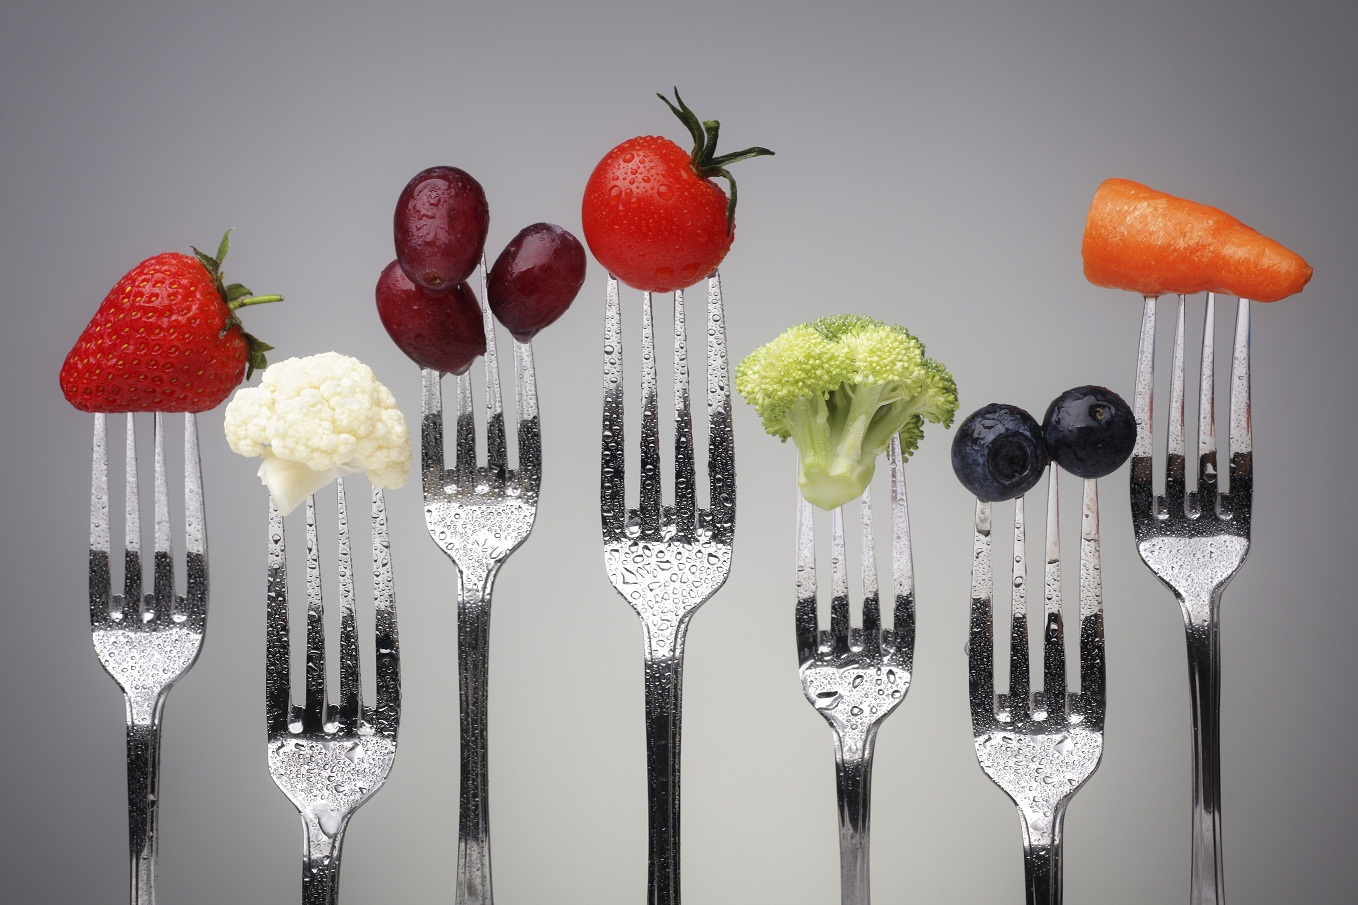 antioxidant foods on forks